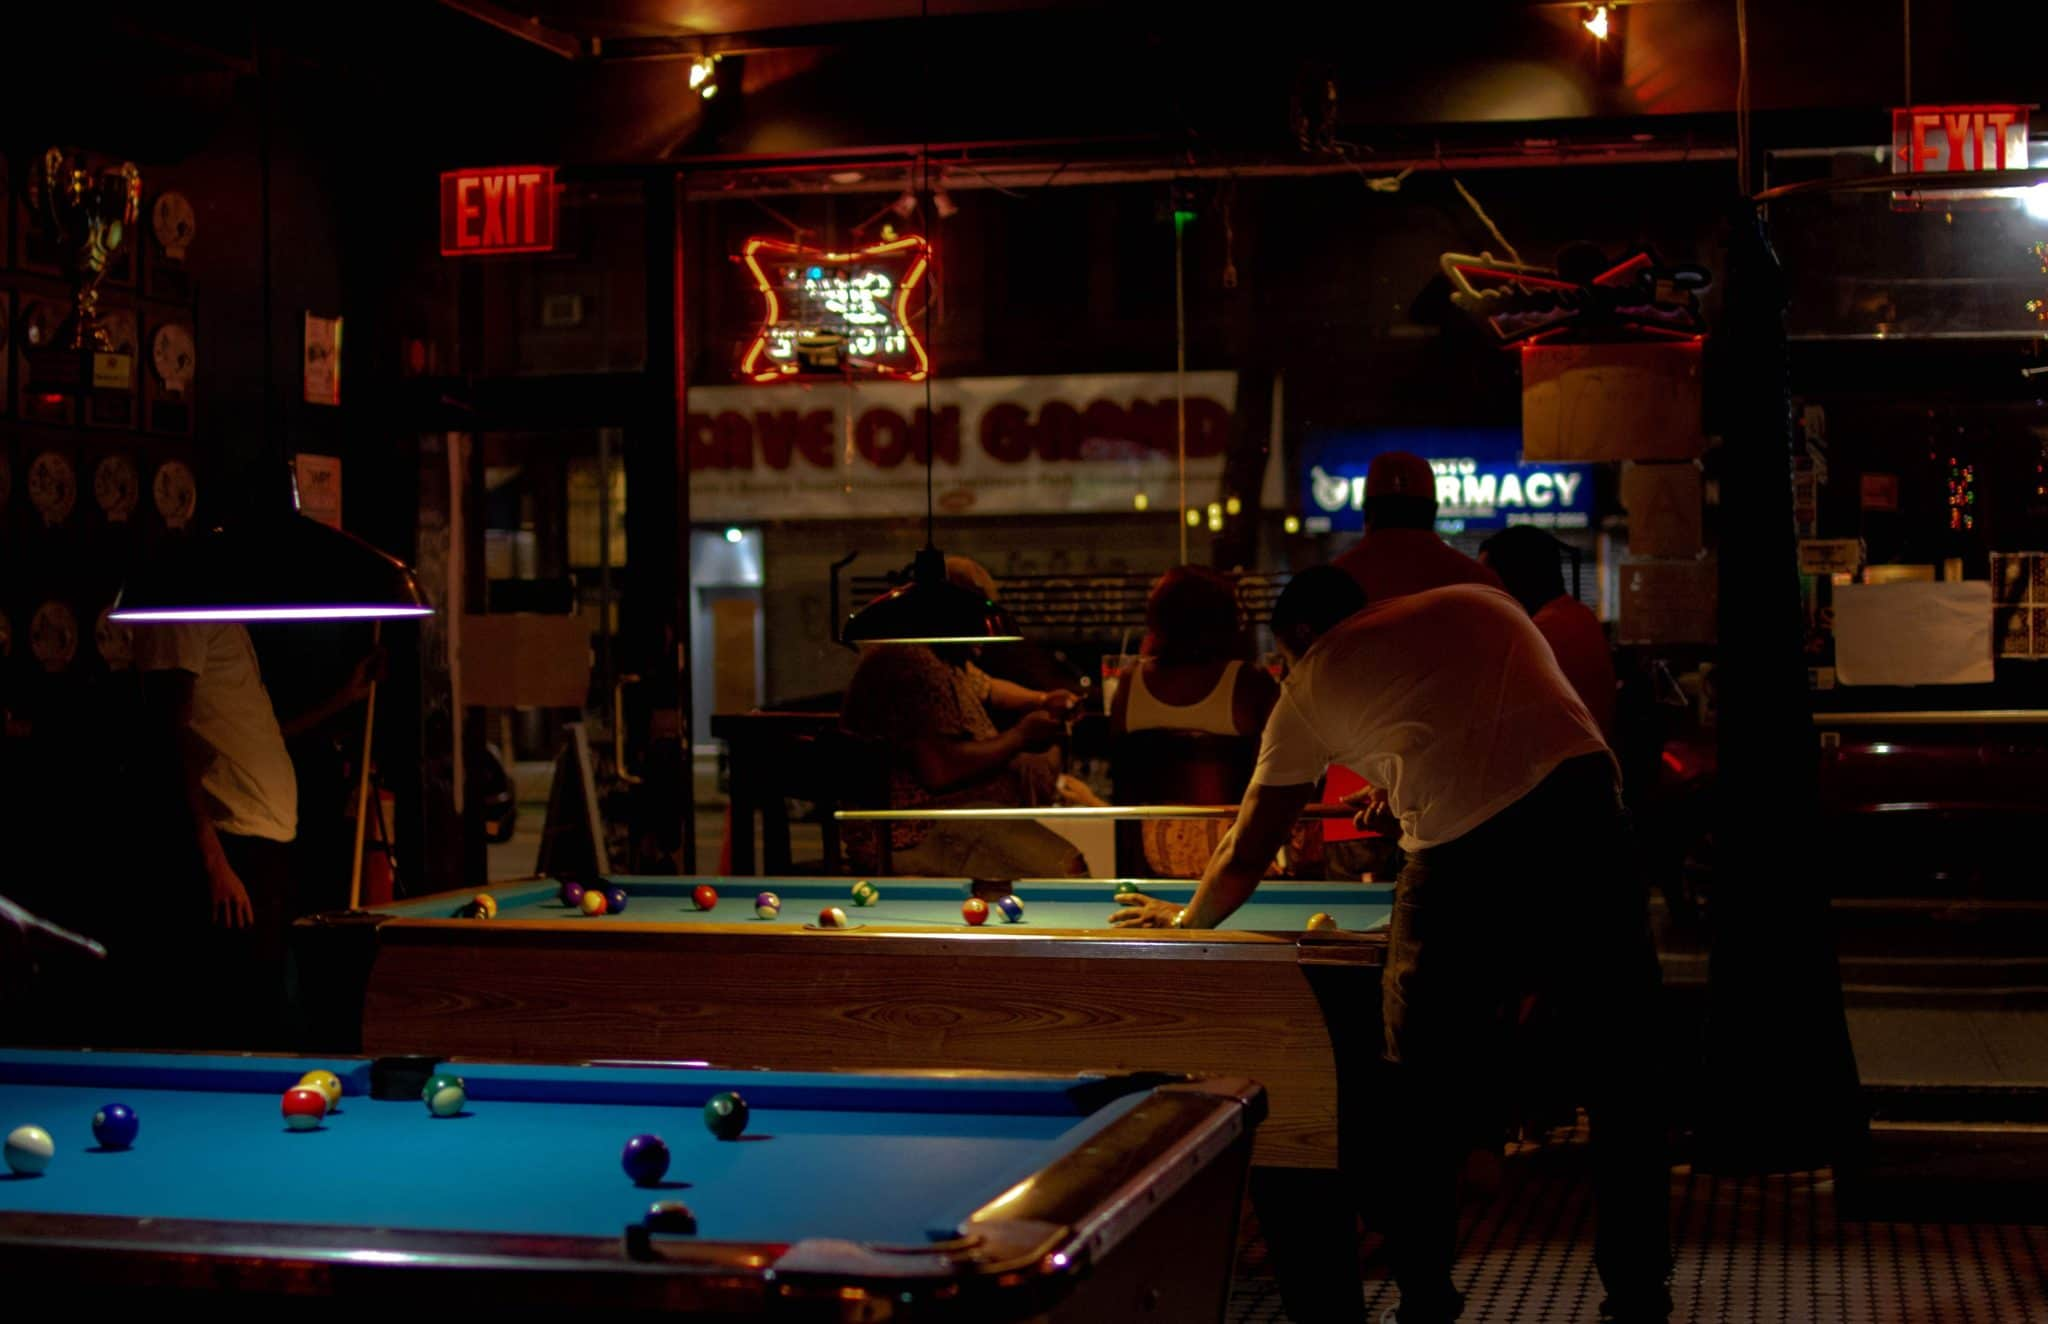 people playing pool at a bar